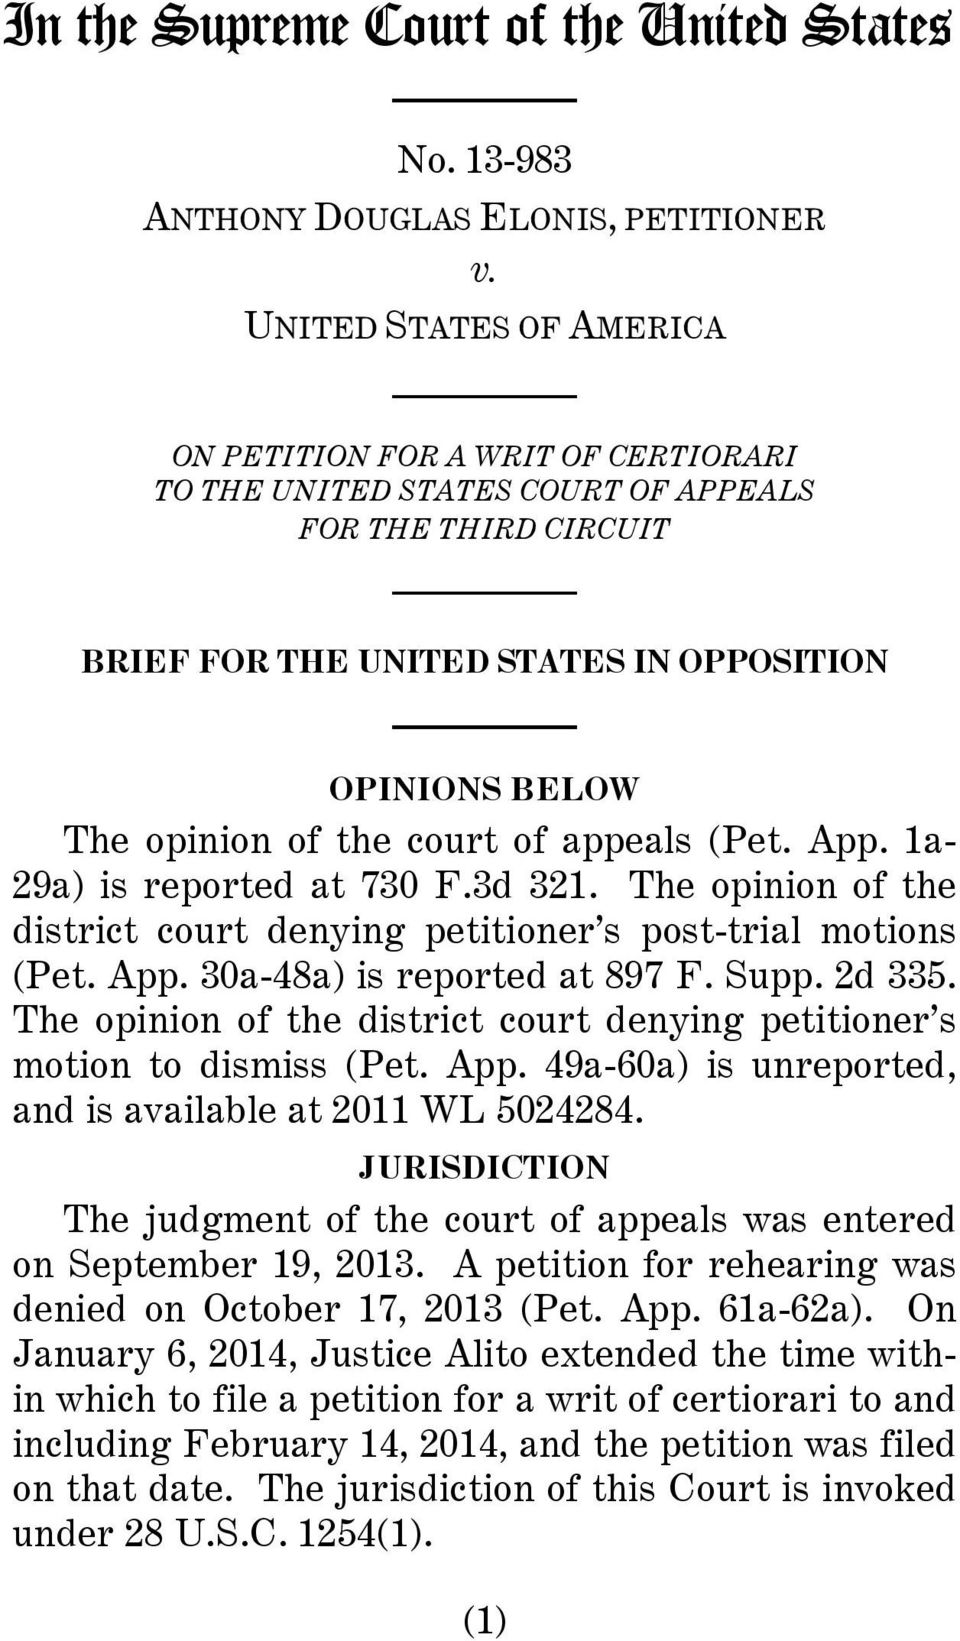 court of appeals (Pet. App. 1a- 29a) is reported at 730 F.3d 321. The opinion of the district court denying petitioner s post-trial motions (Pet. App. 30a-48a) is reported at 897 F. Supp. 2d 335.